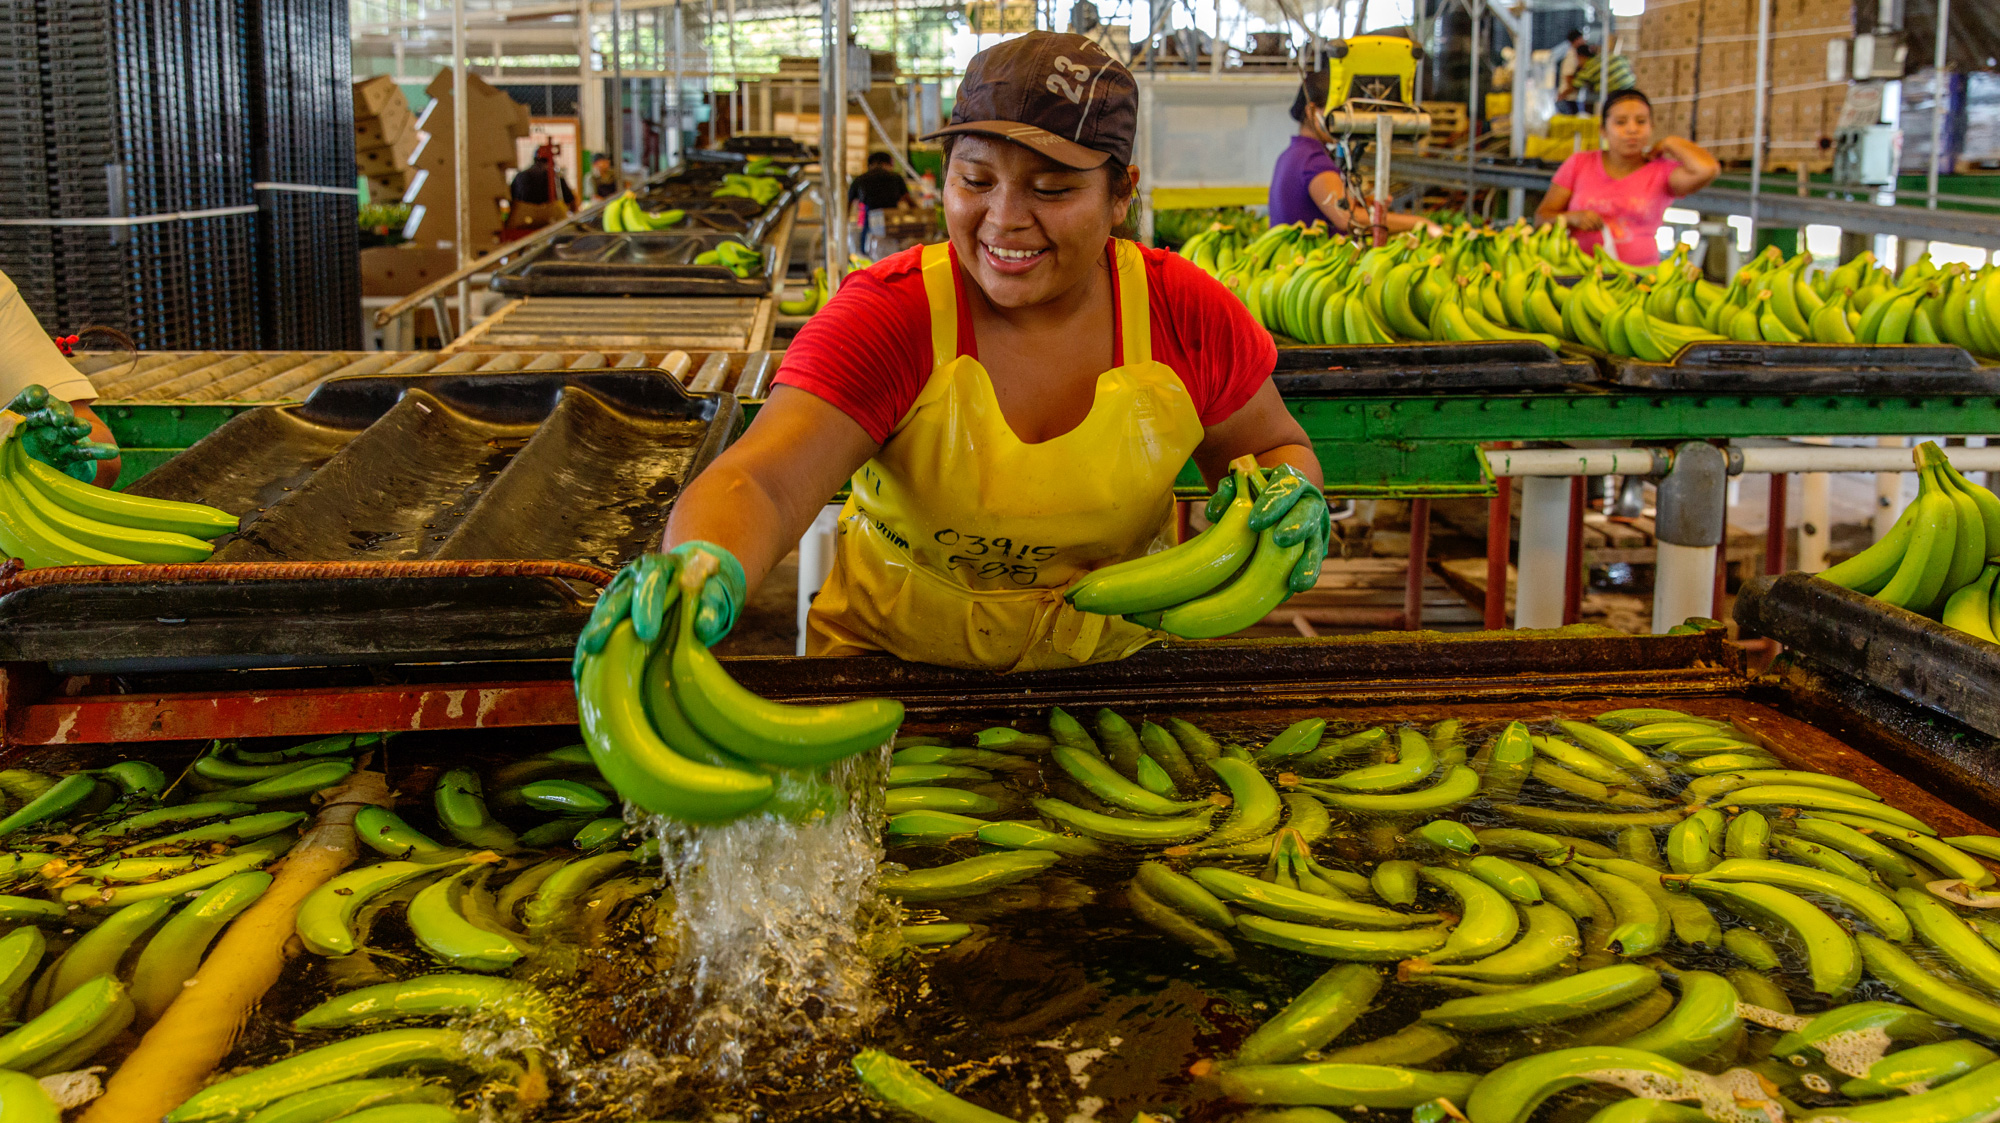 Woman cleaning bananas